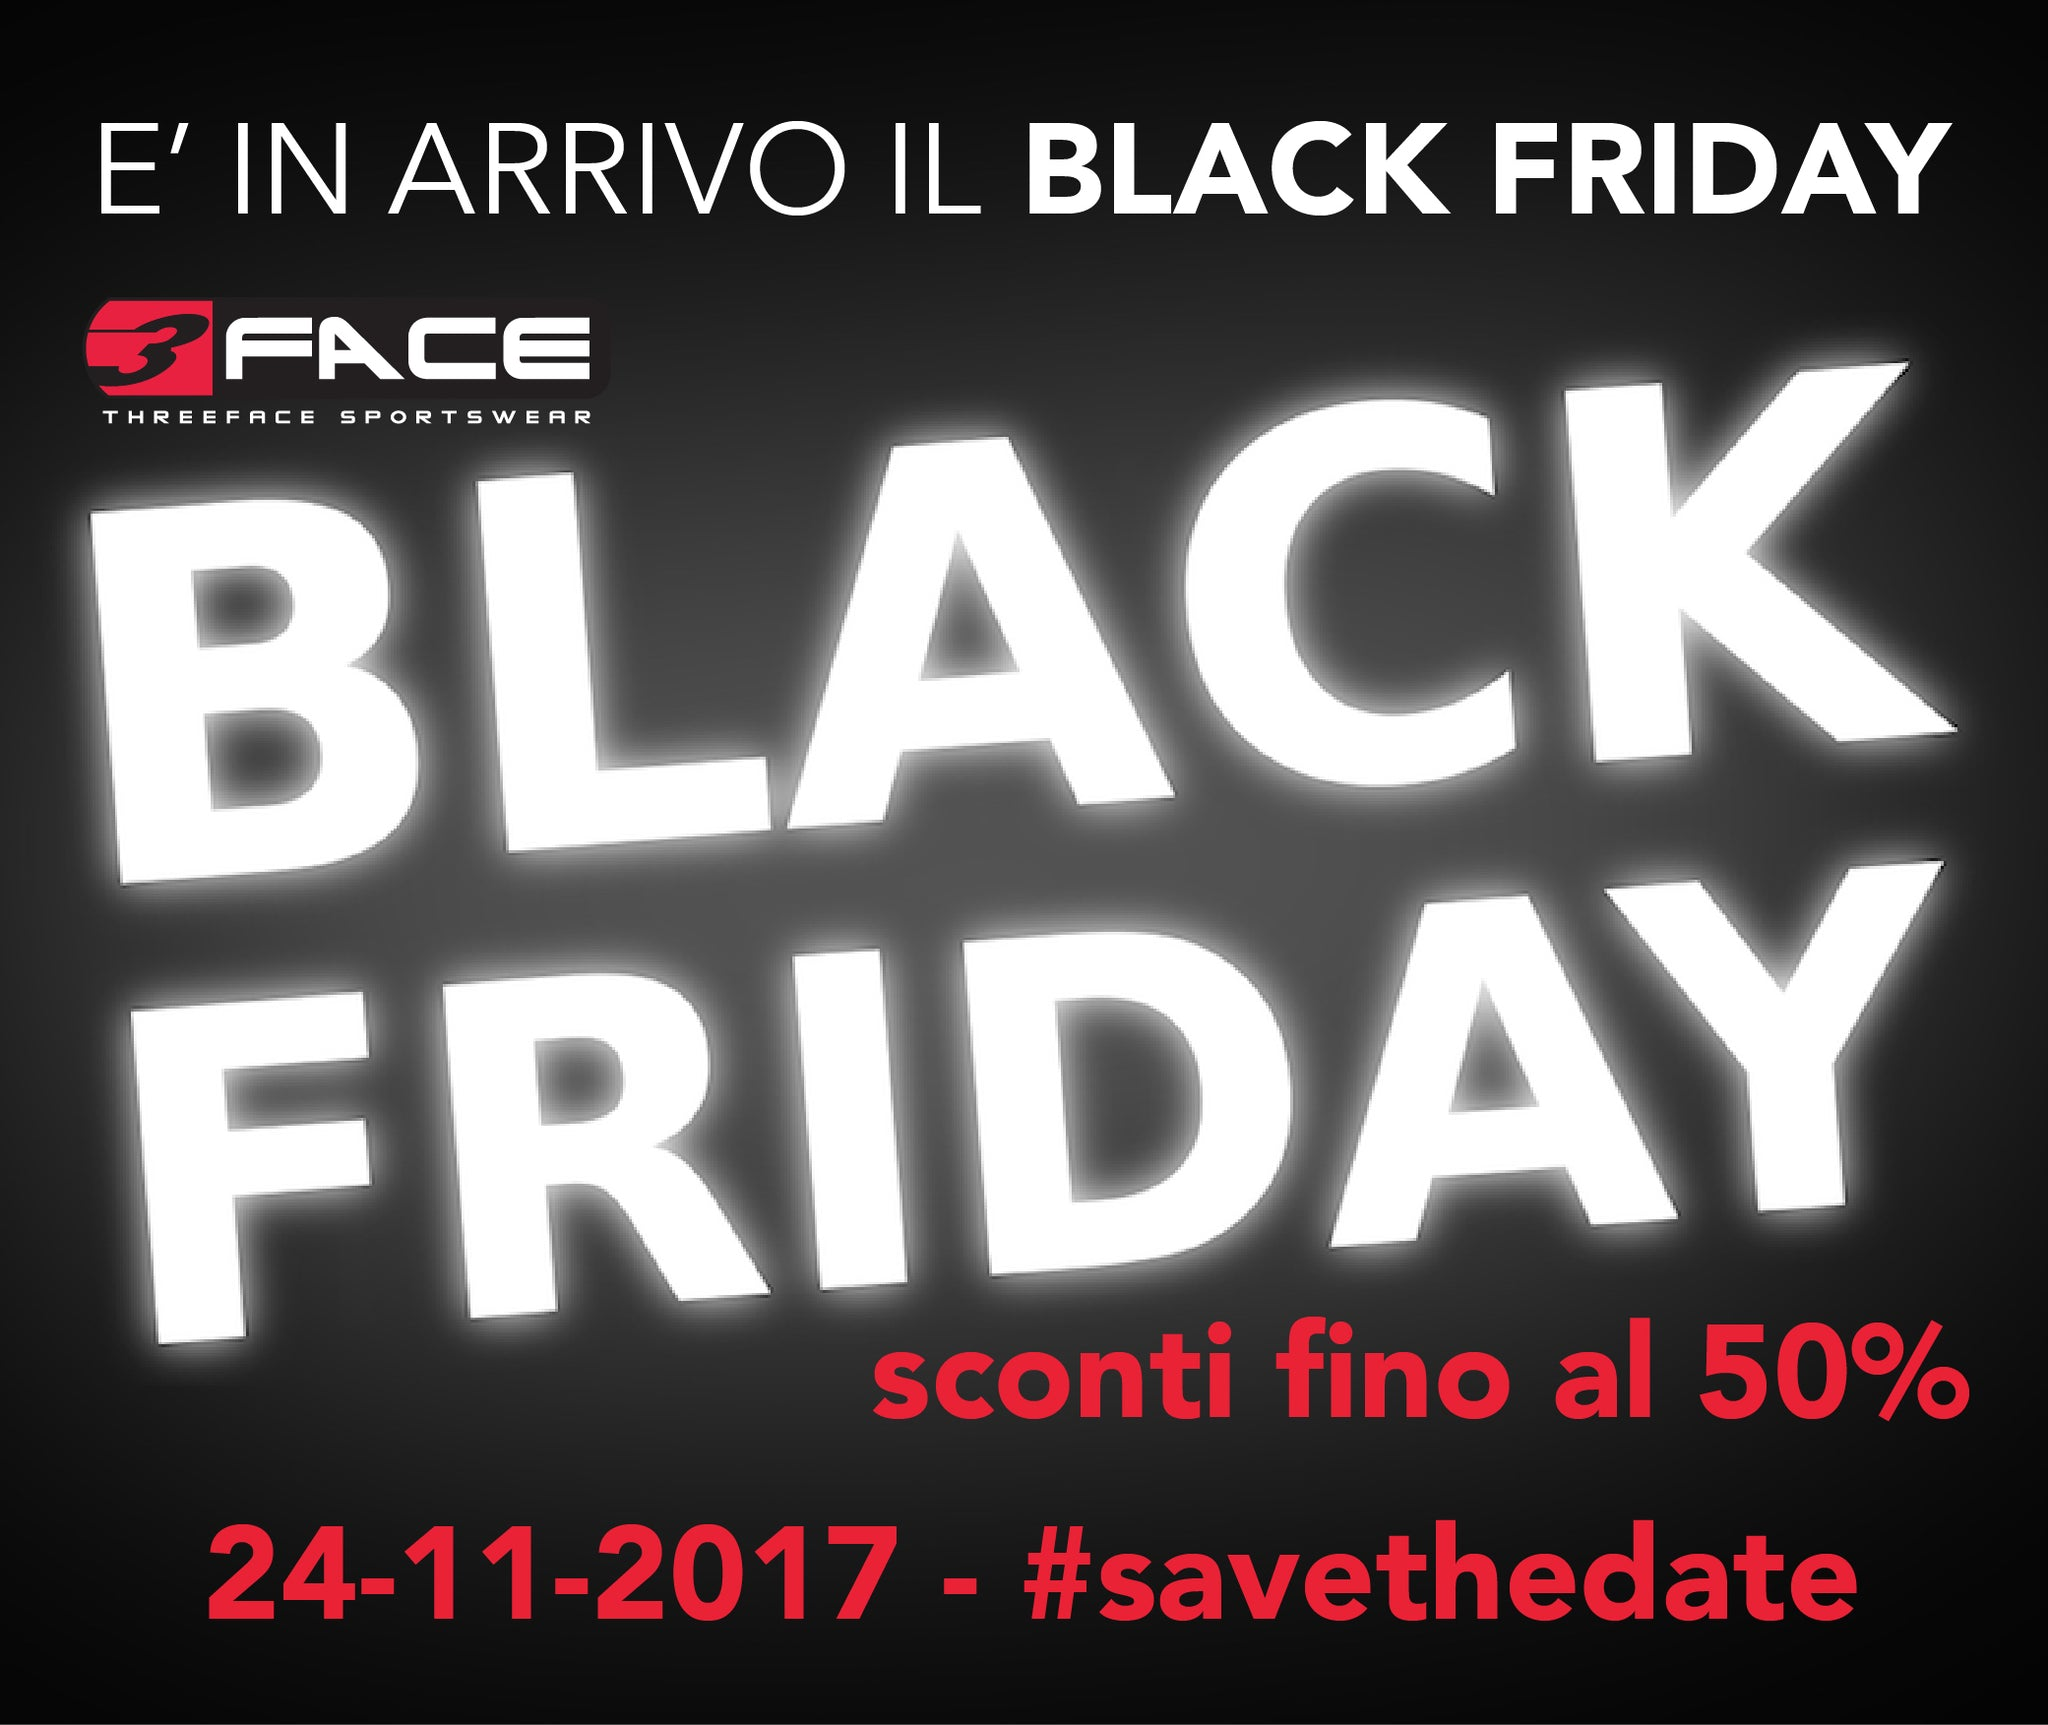 Black Friday in arrivo! 24 Novembre - #savethedate